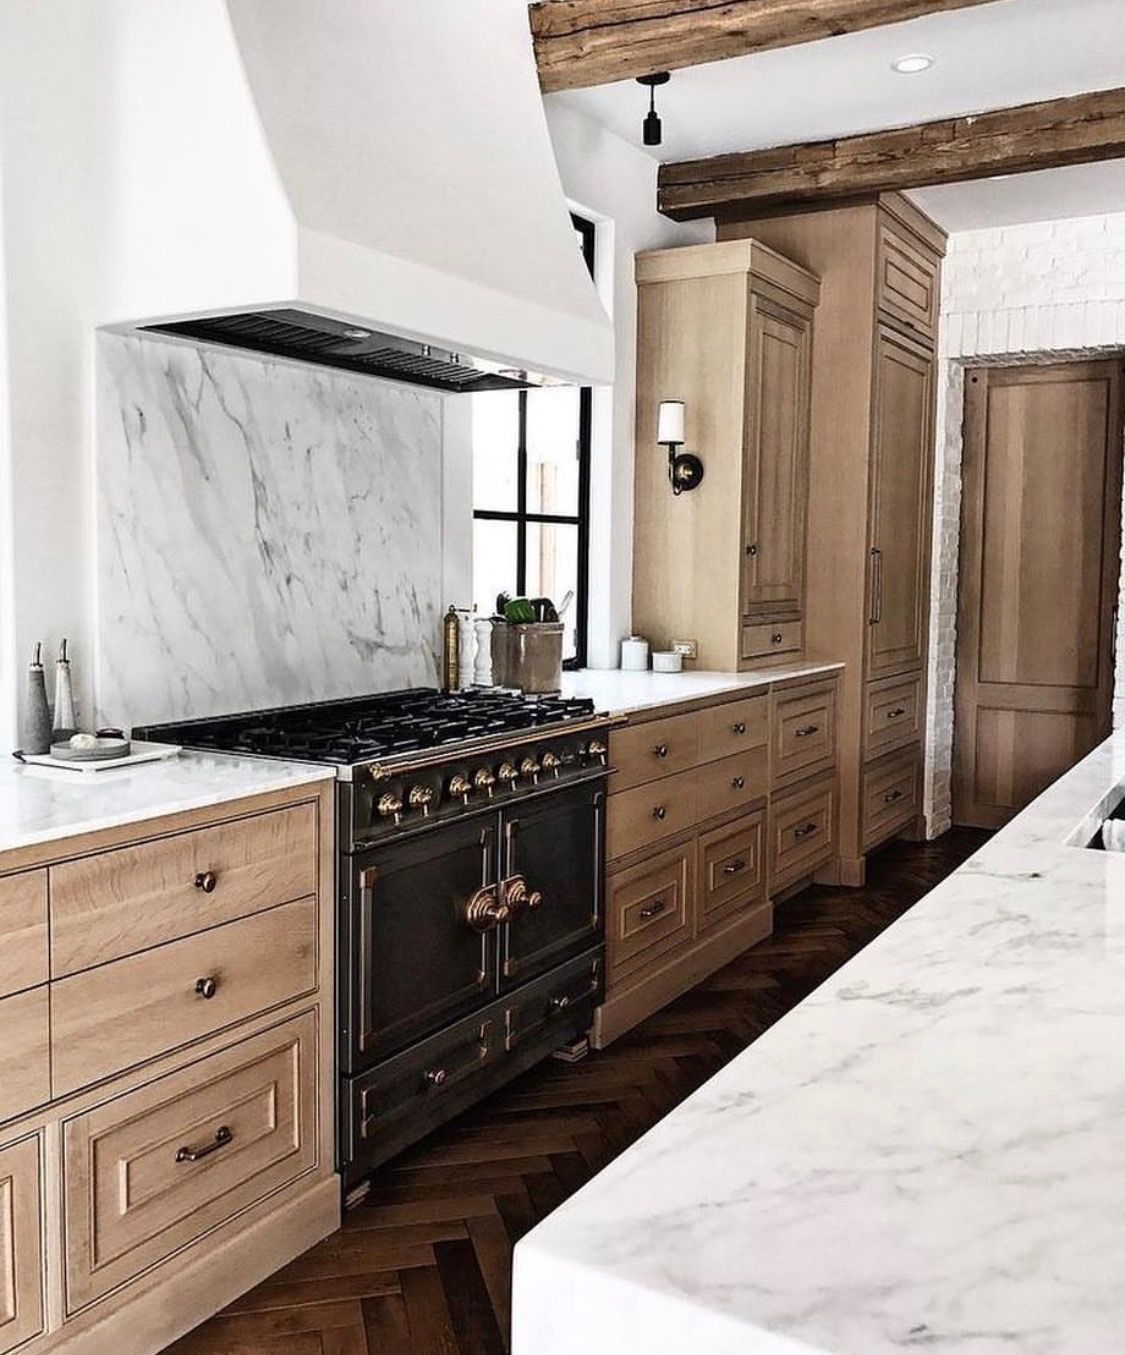 Hidden Hood Cabinetry Timber Plain Cabinet Drawers With Exposed